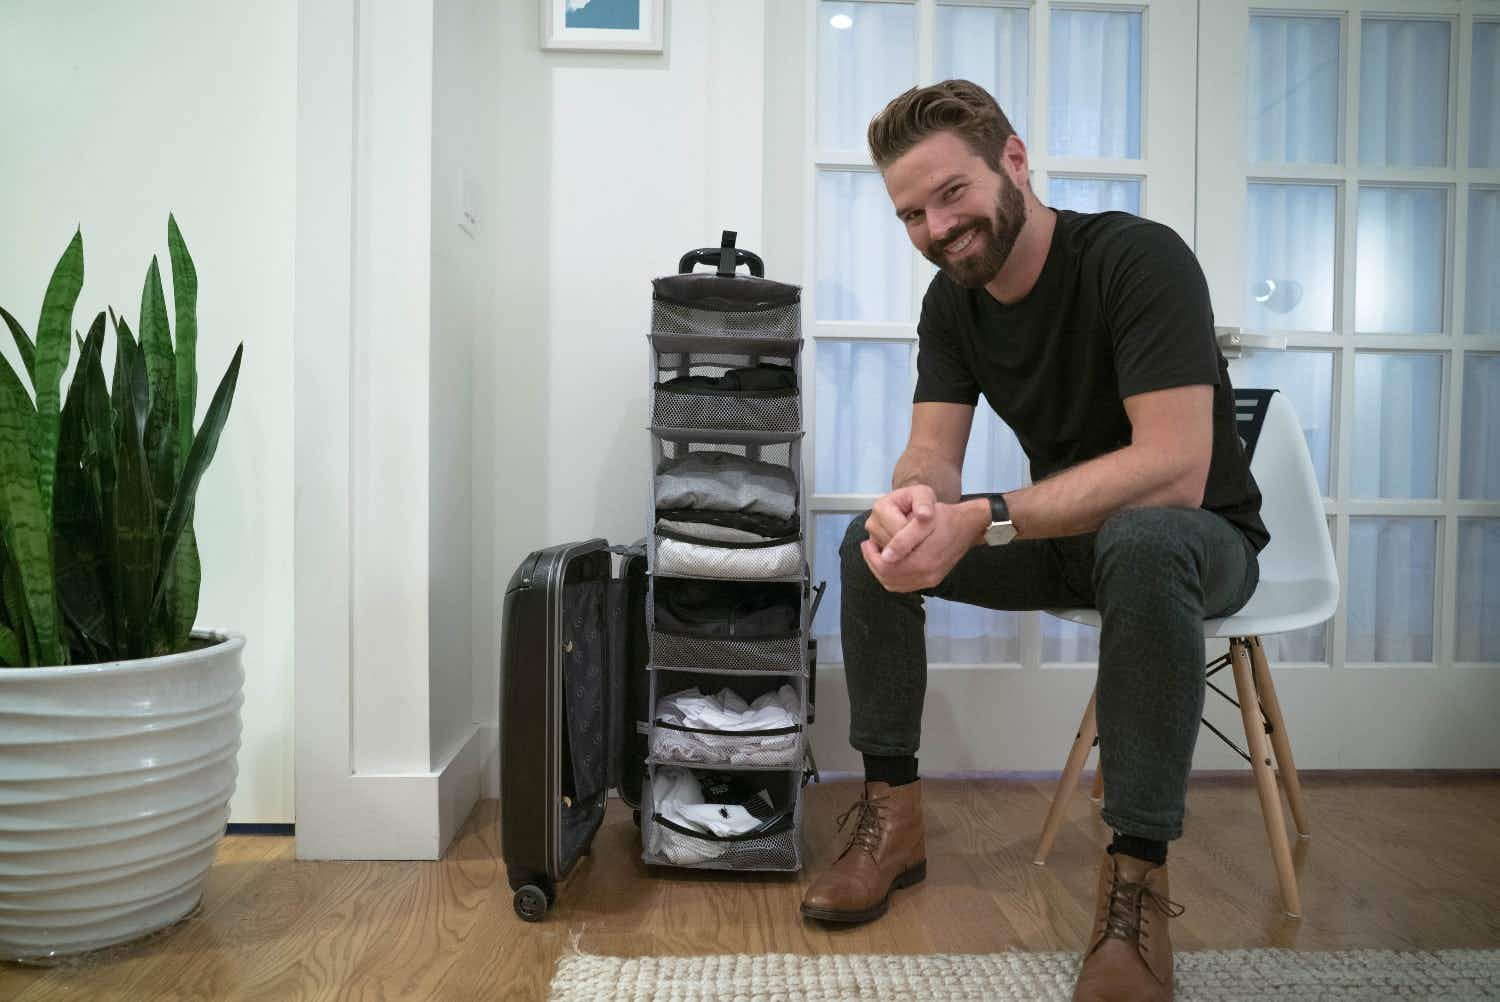 This suitcase is actually a carry-on closet that folds out into shelves